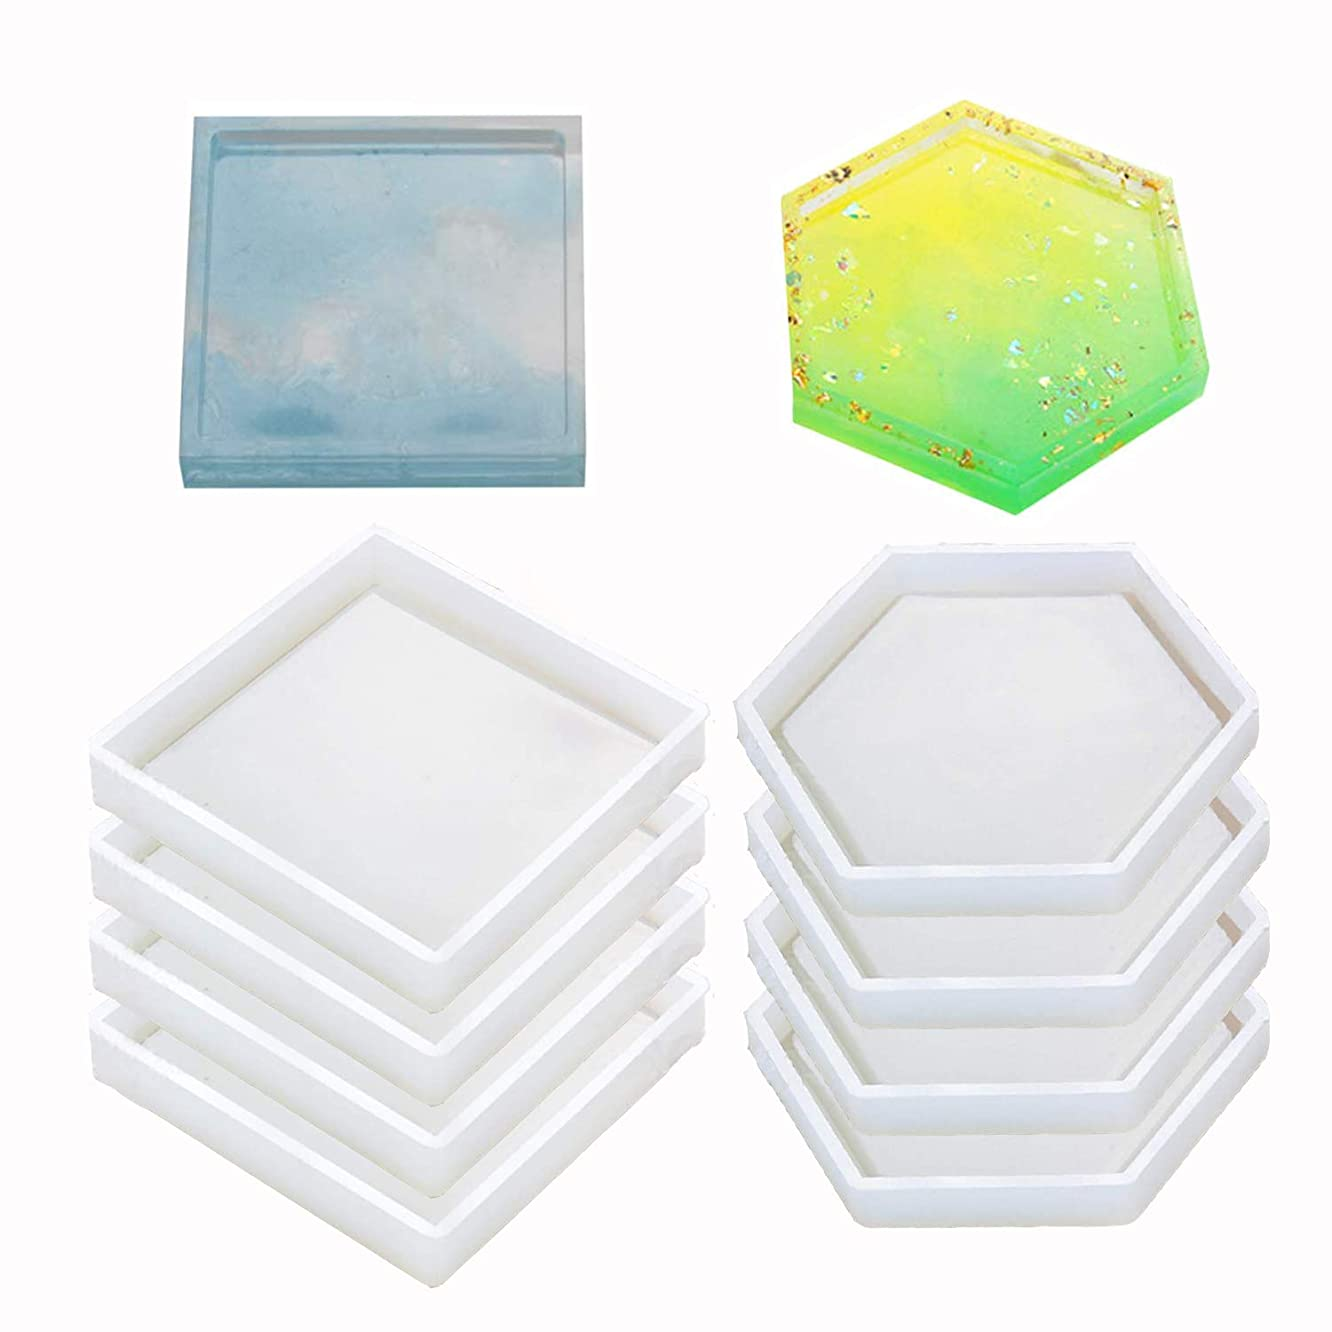 8 Pack Silicone Coaster Molds Including Square, Hexagon - Silicone Resin Mold, Clear Epoxy Molds for Casting with Resin, Concrete, Cement and Polymer Clay